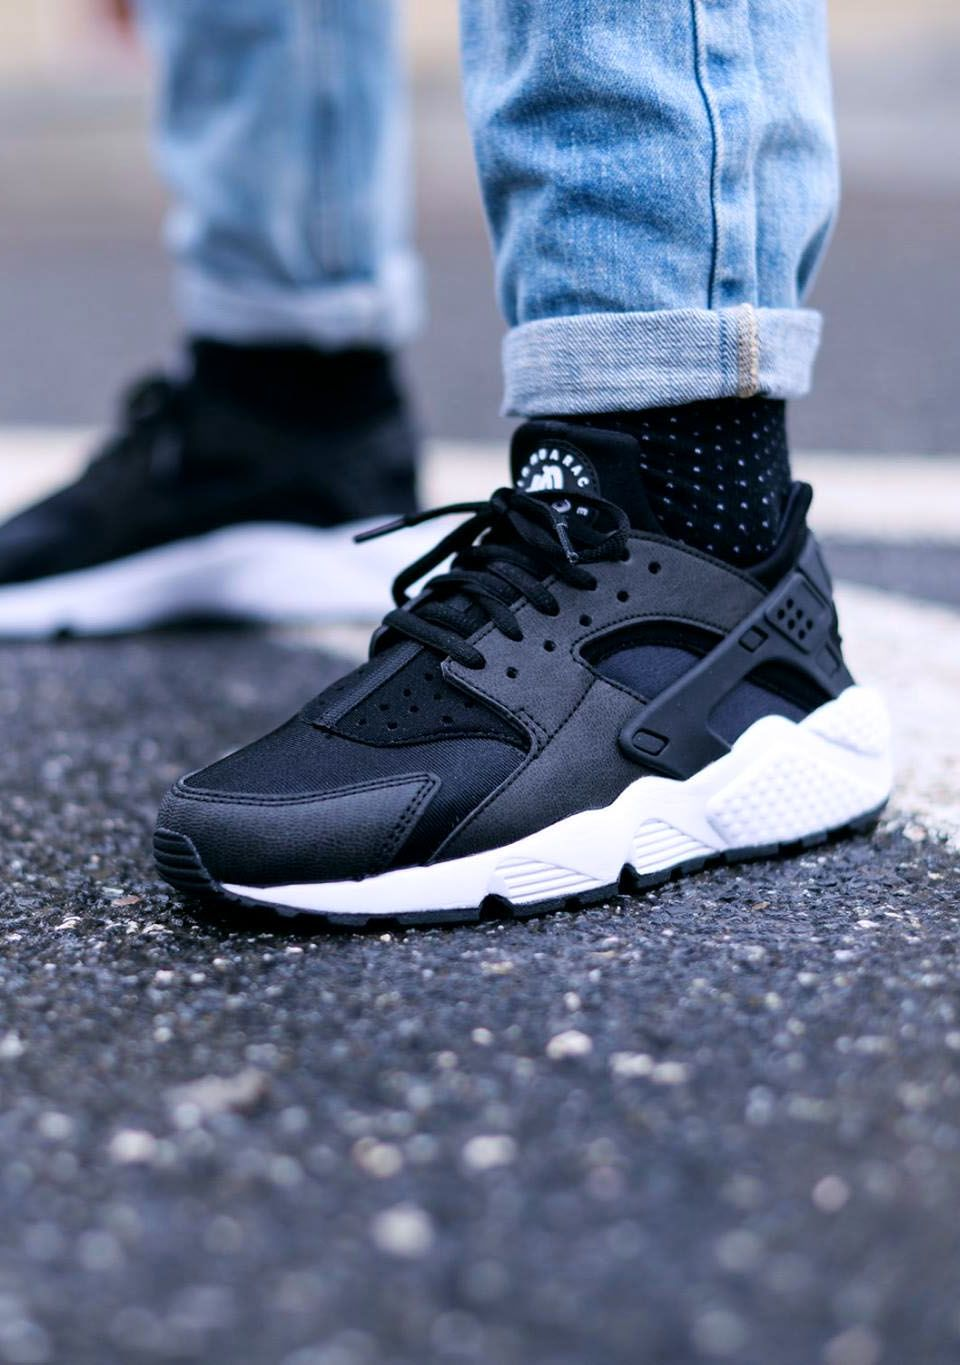 14087cbd2c8 The Nike Huarache is a timeless classic. watch out for fakes when ...